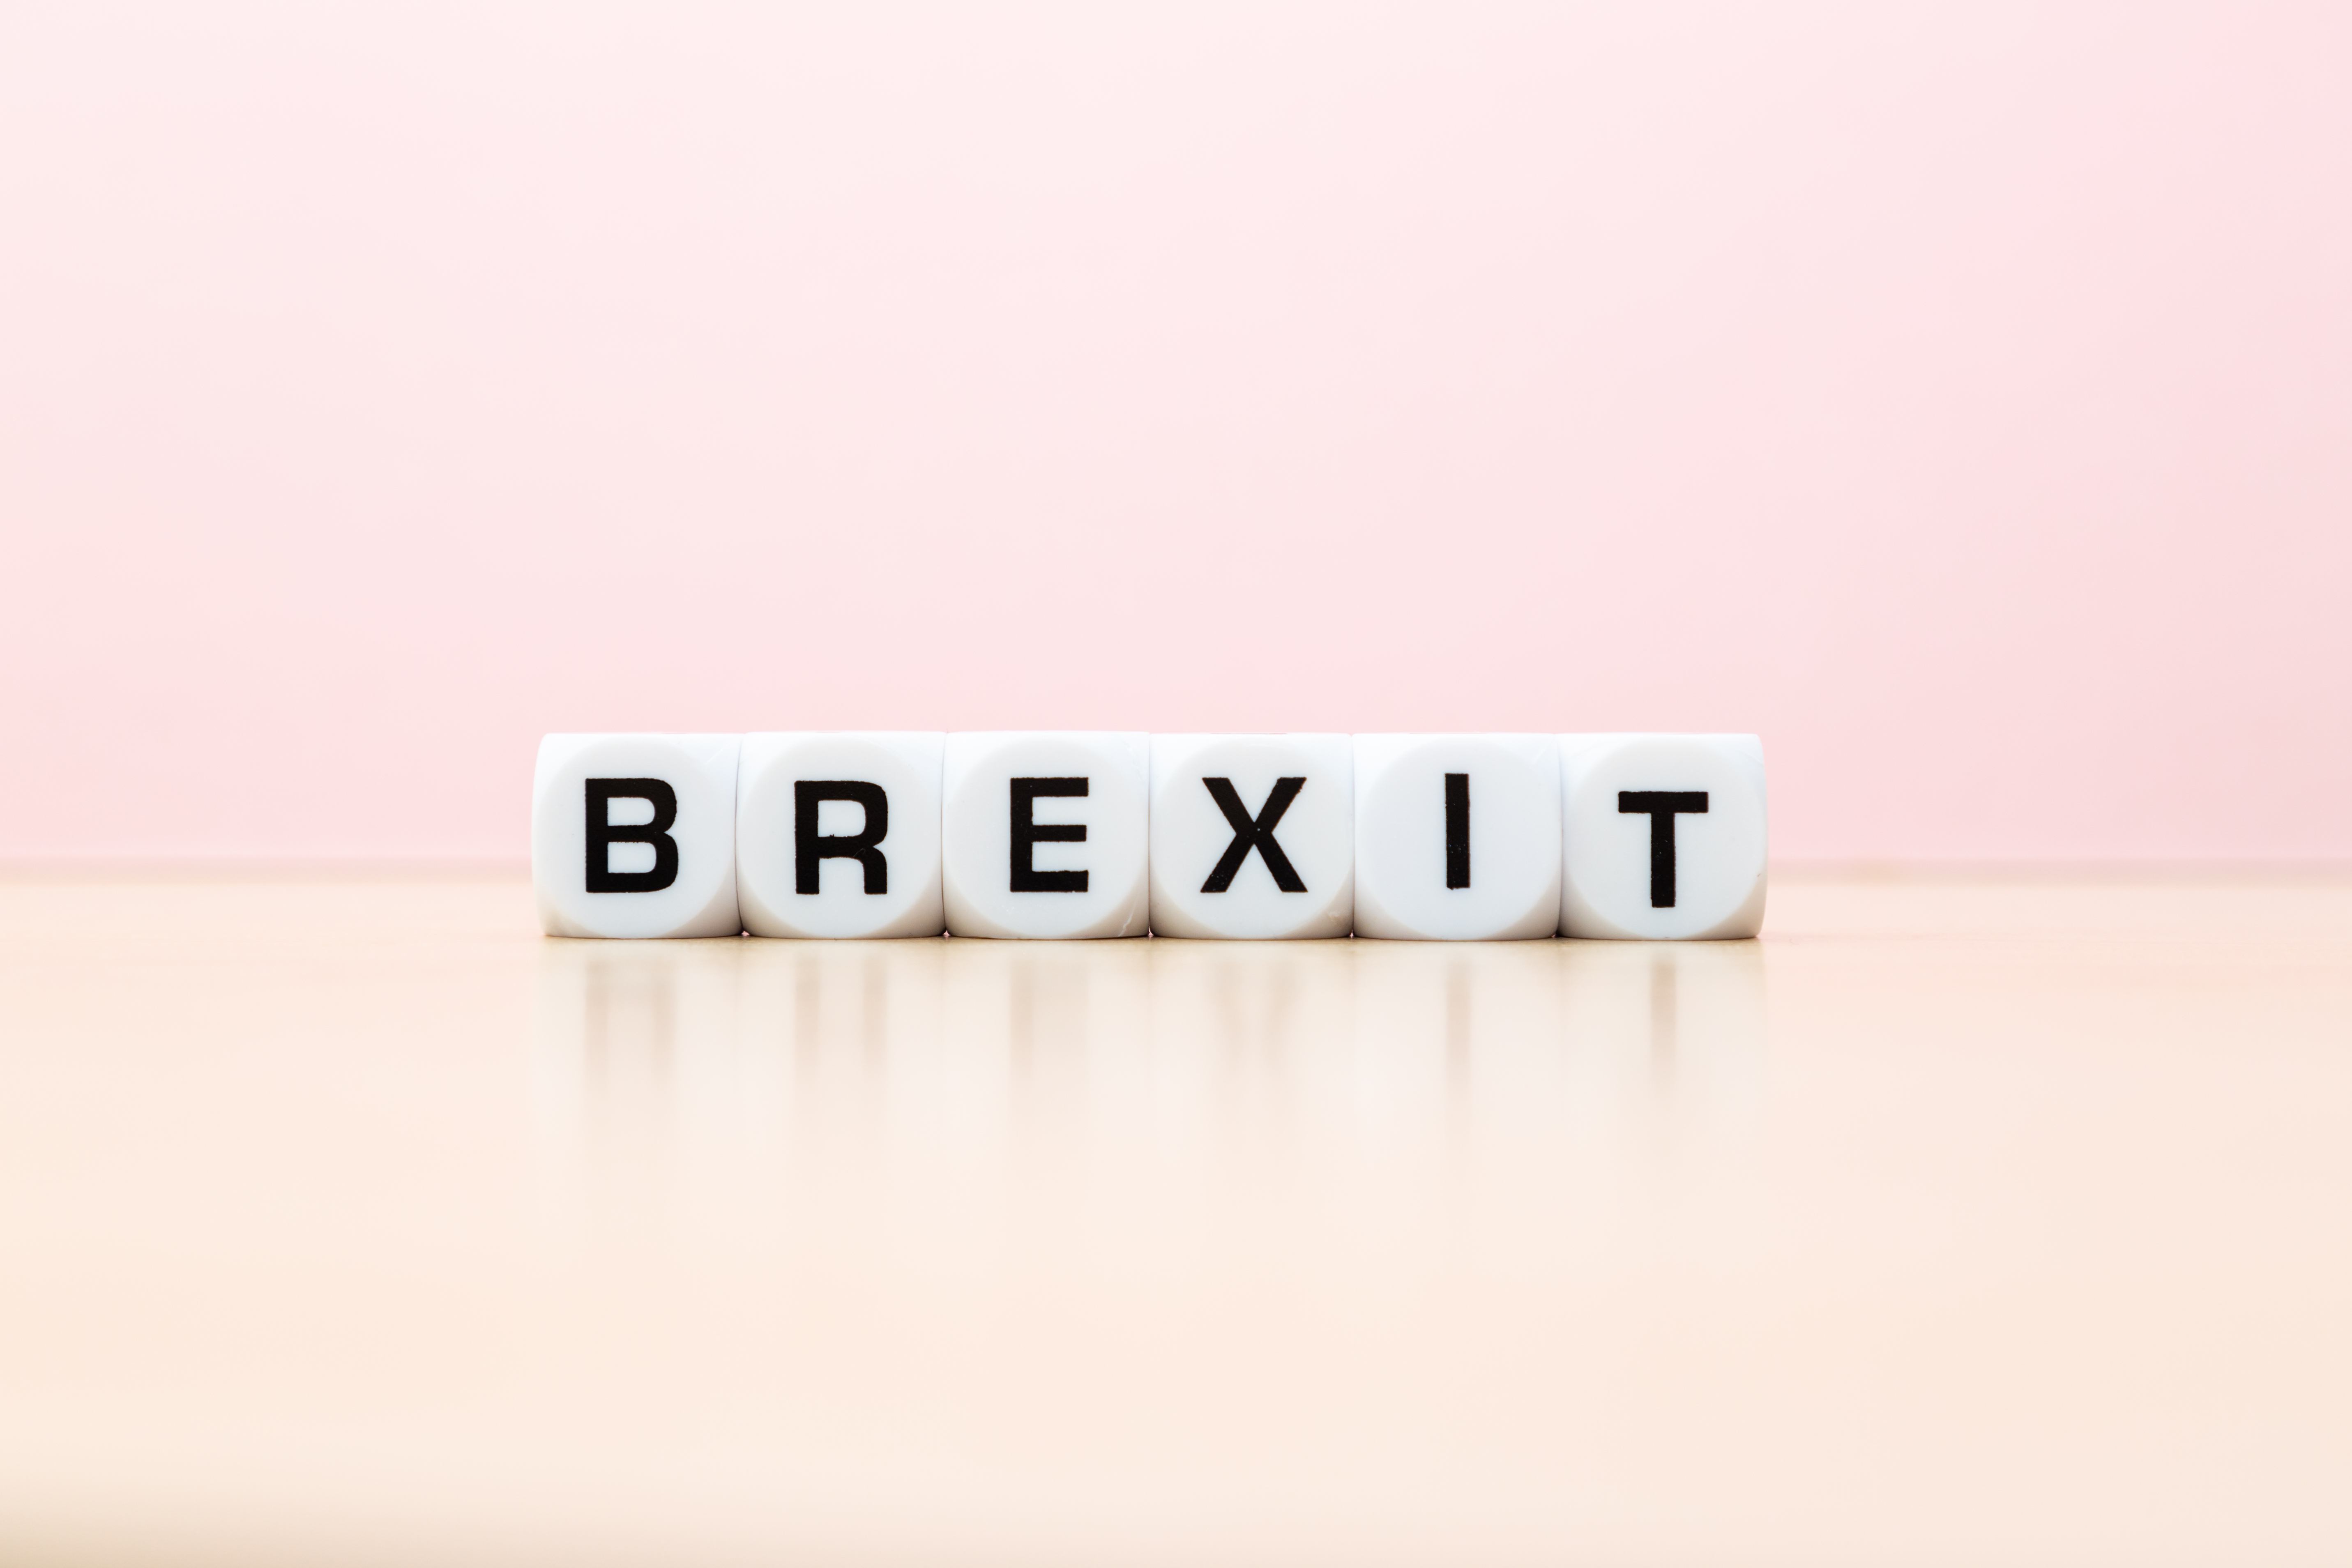 Brexit and moving your business offshore